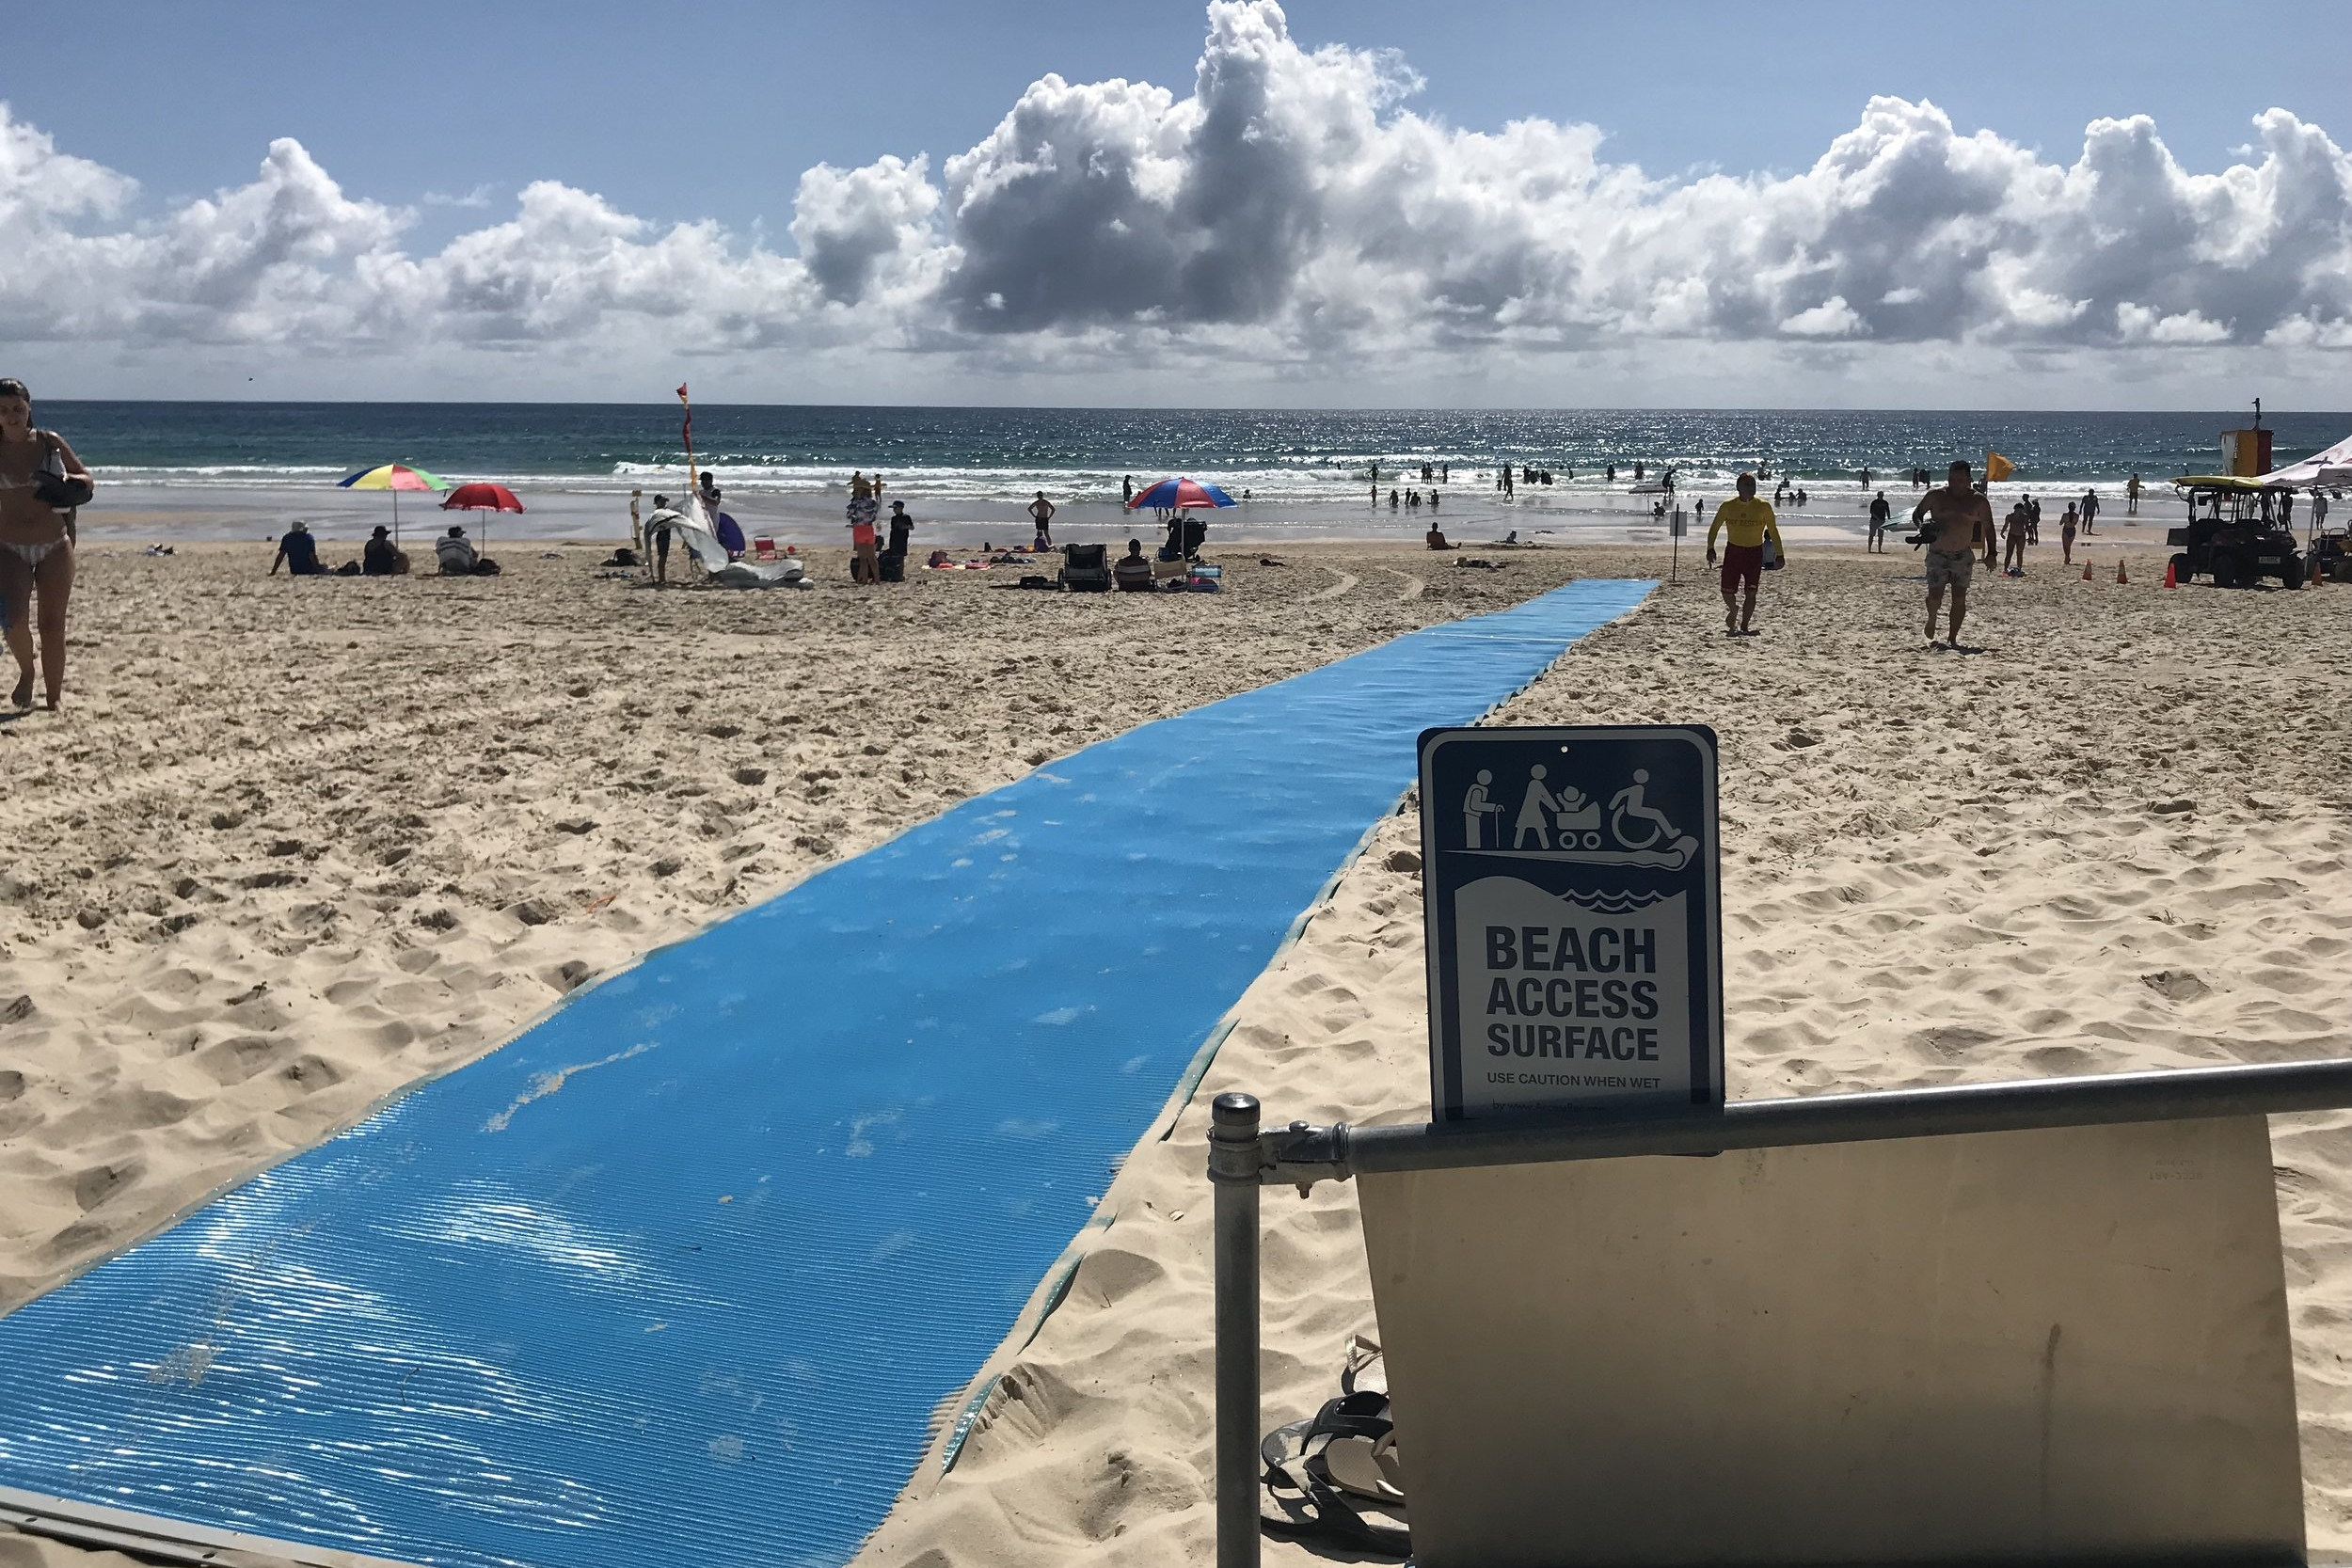 Community Engagement - As an charitable organisation, our object is to provide for the community. In addition to patrolling services, Nobby's Beach SLSC has strong relationships with other community organisations as well as supporting the local community through initiatives such as the Beach Access Matting (pictured).